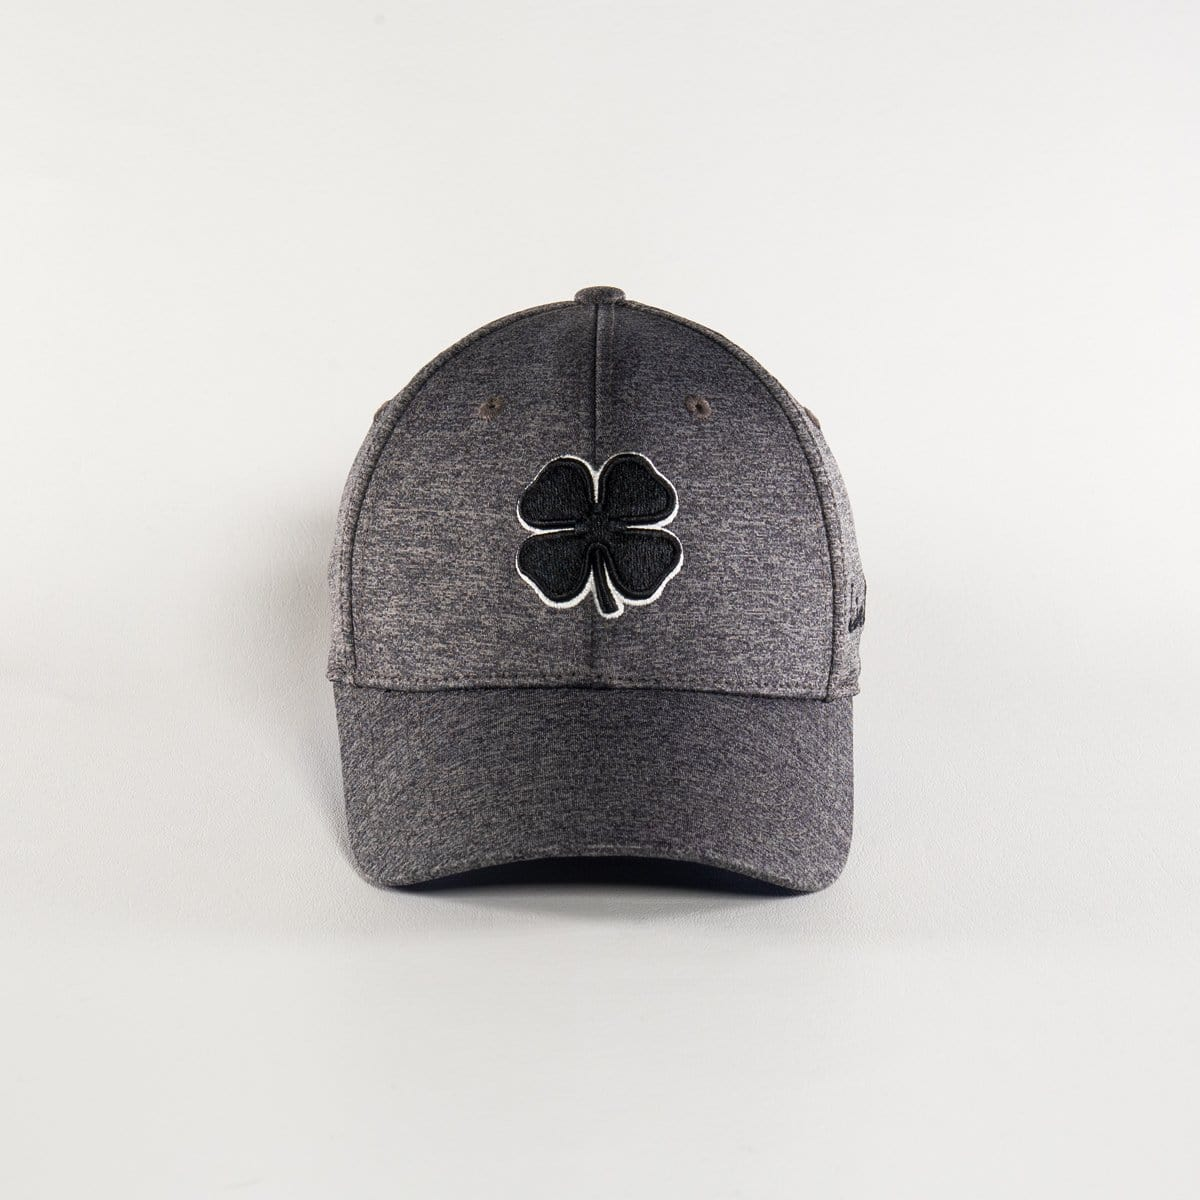 Black Clover Baseball Caps Lucky Heather Charcoal equestrian team apparel online tack store mobile tack store custom farm apparel custom show stable clothing equestrian lifestyle horse show clothing riding clothes horses equestrian tack store